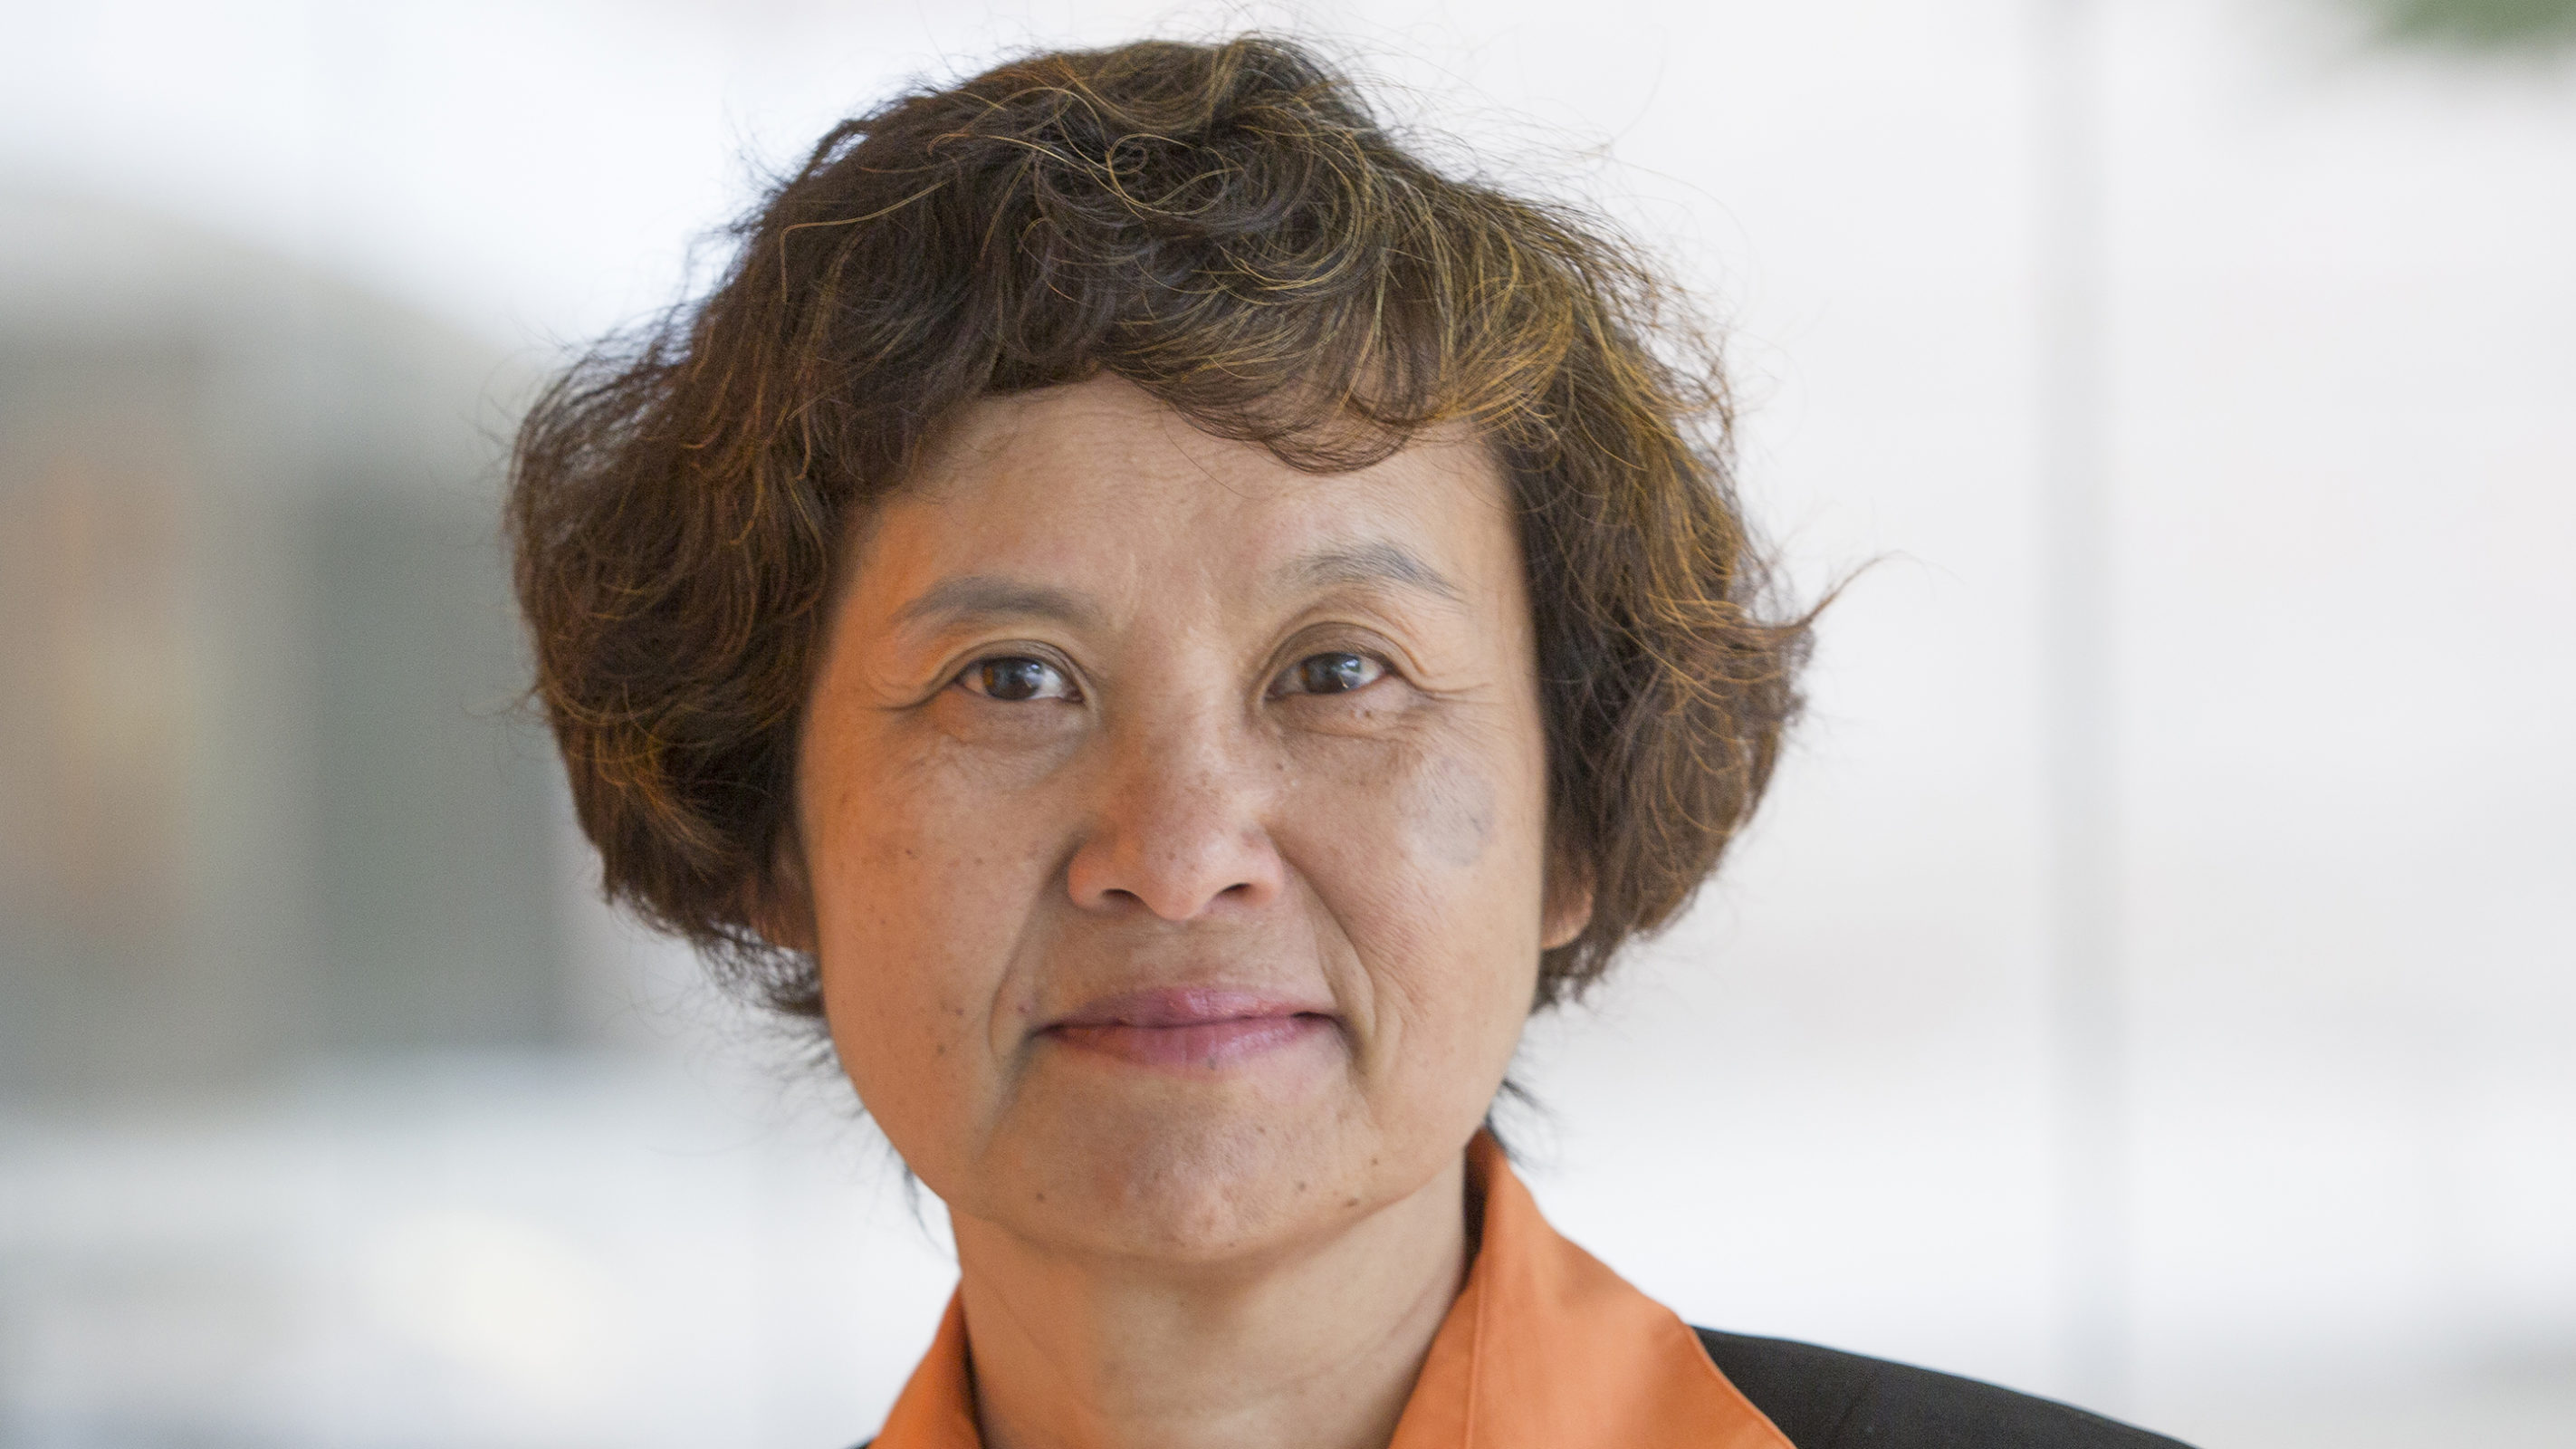 Jing Sun Elected IFAC Fellow